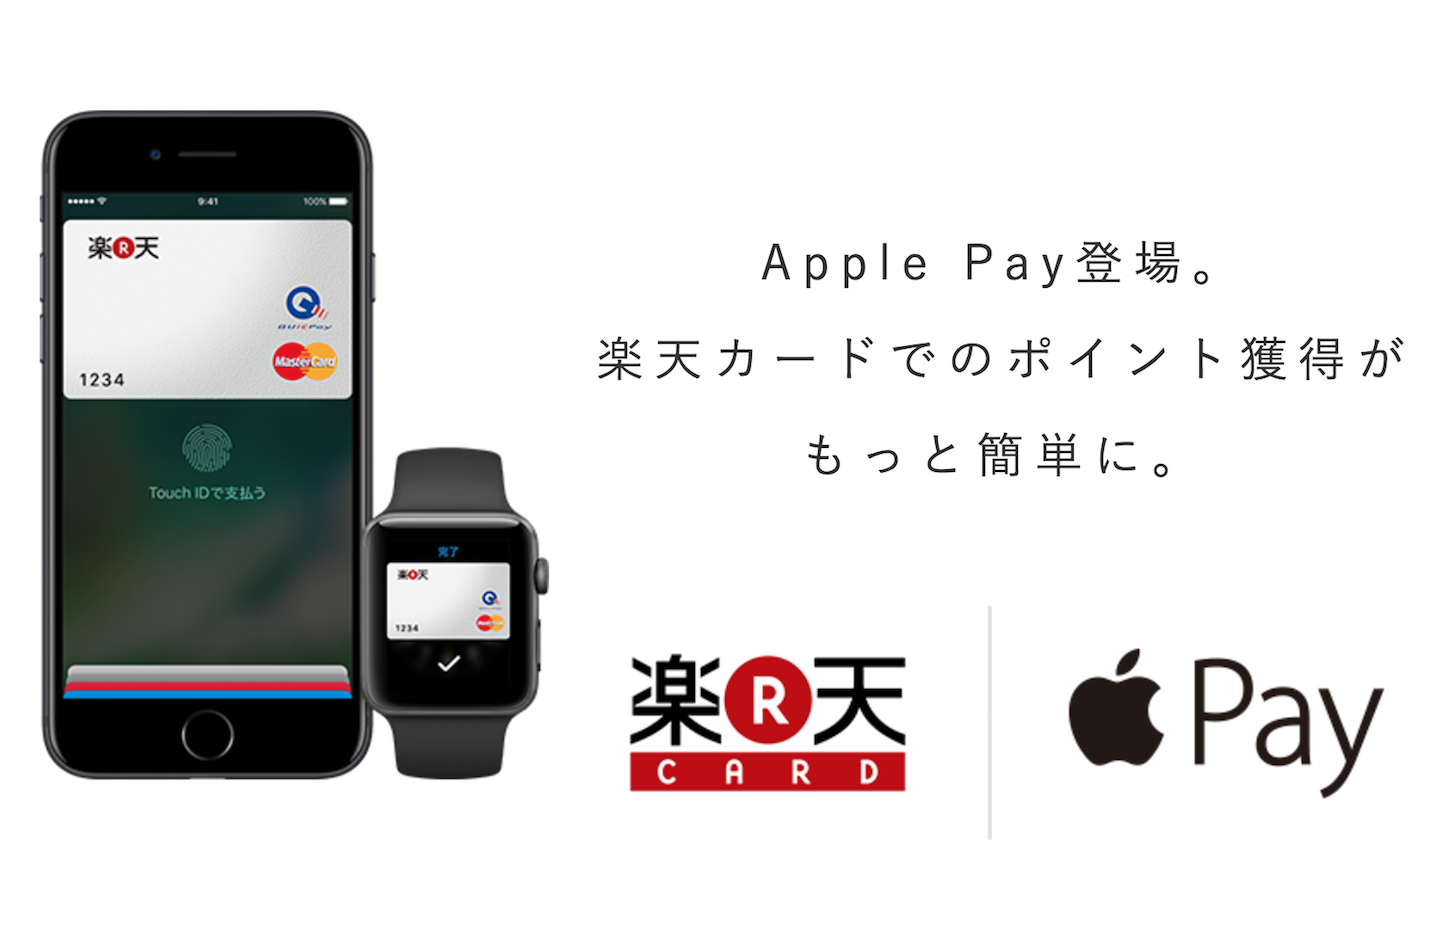 Rakuten Apple Pay